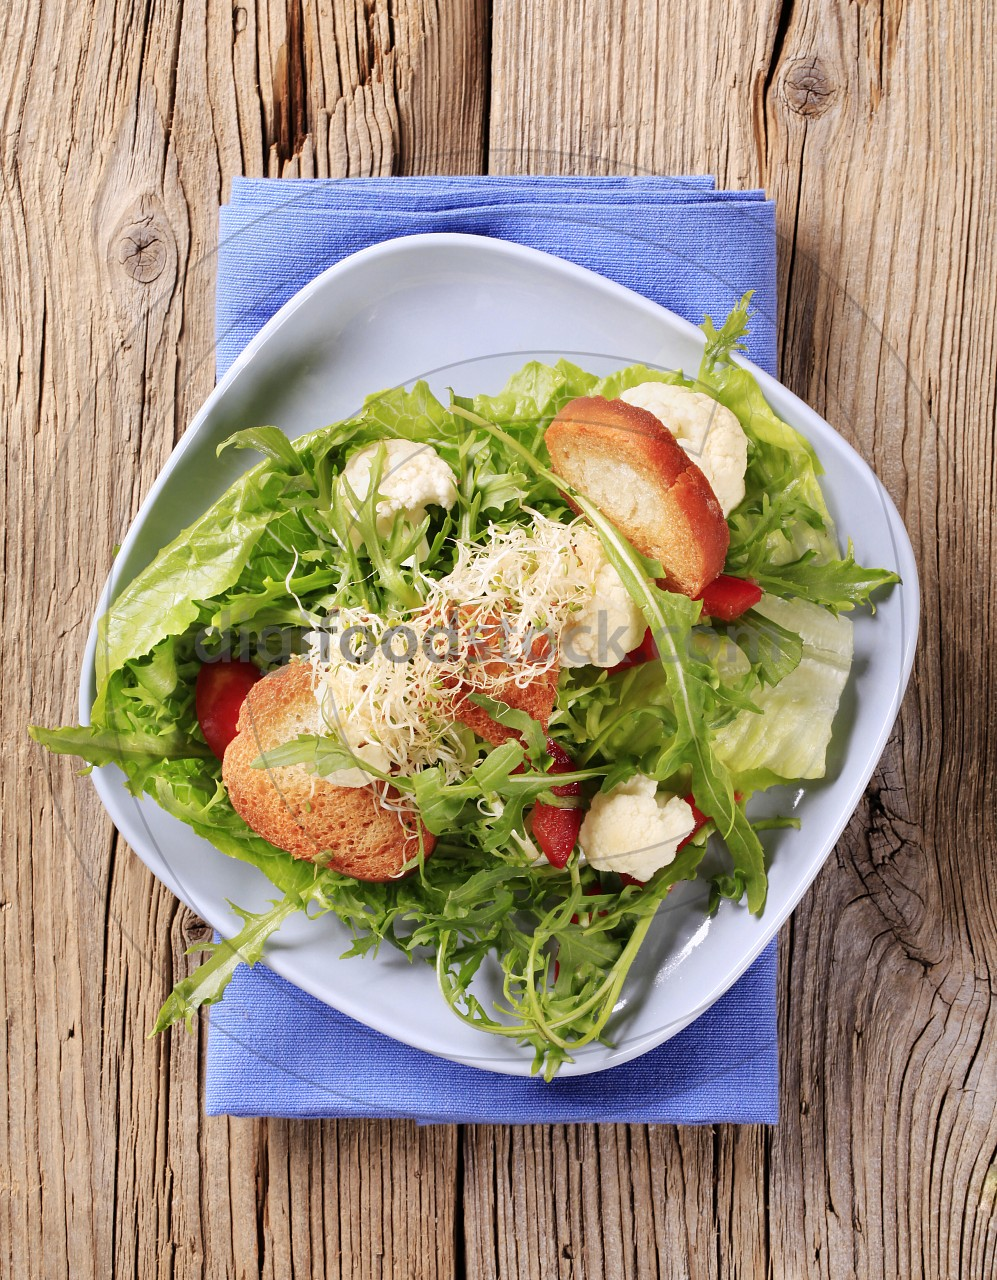 Healthy salad and crispy bread